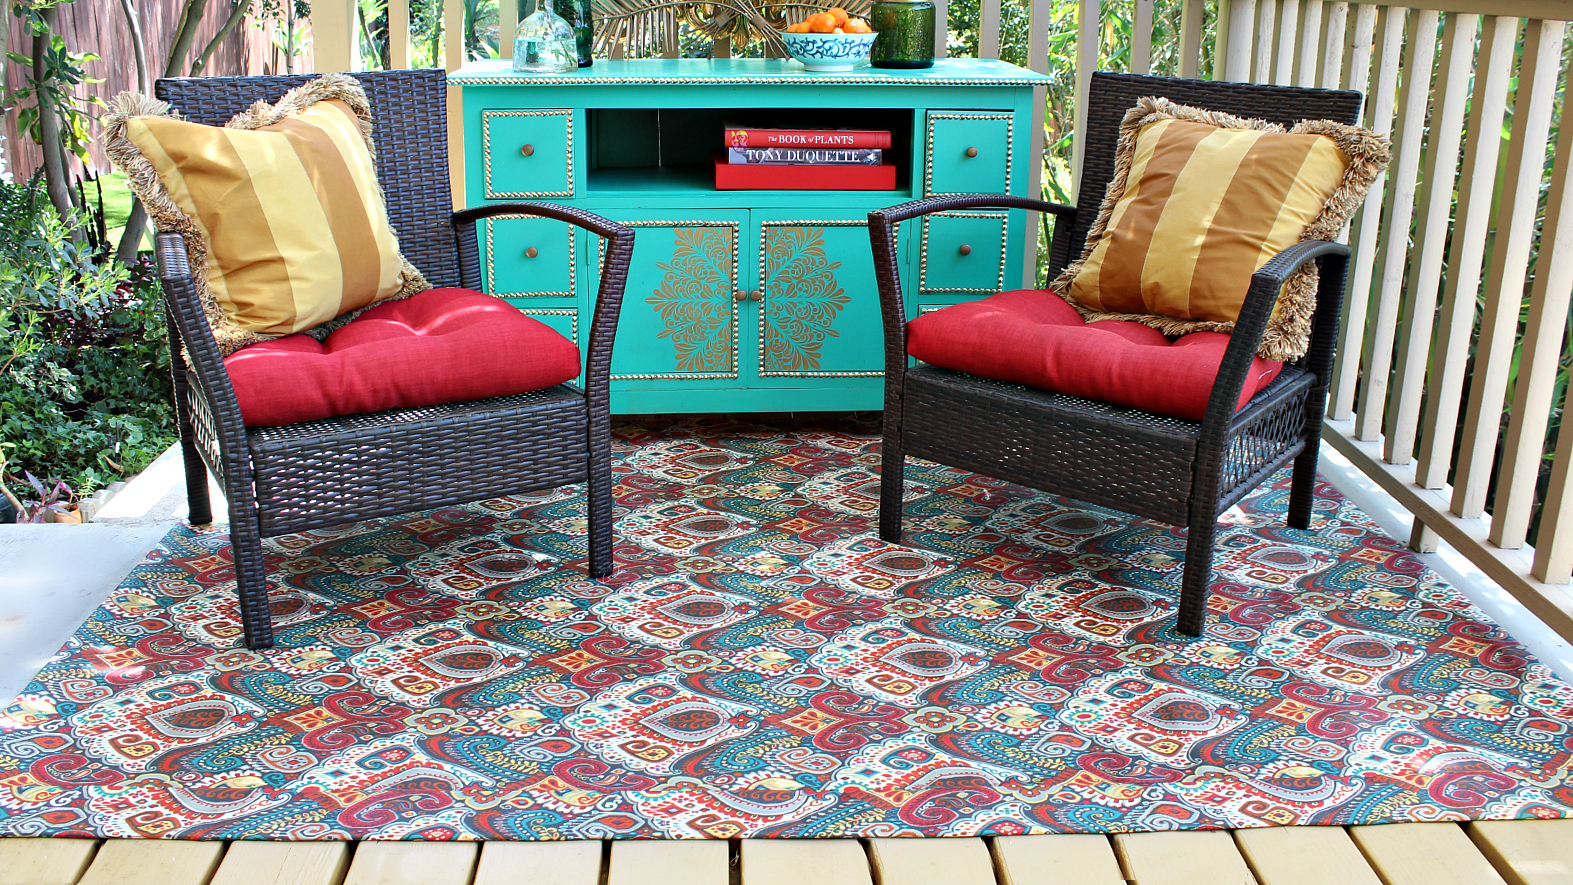 network how pop and outdoor or painter paint diy patio pin add rug bright deck s cloth your stencils color to from turn by of drop a canvas an into making